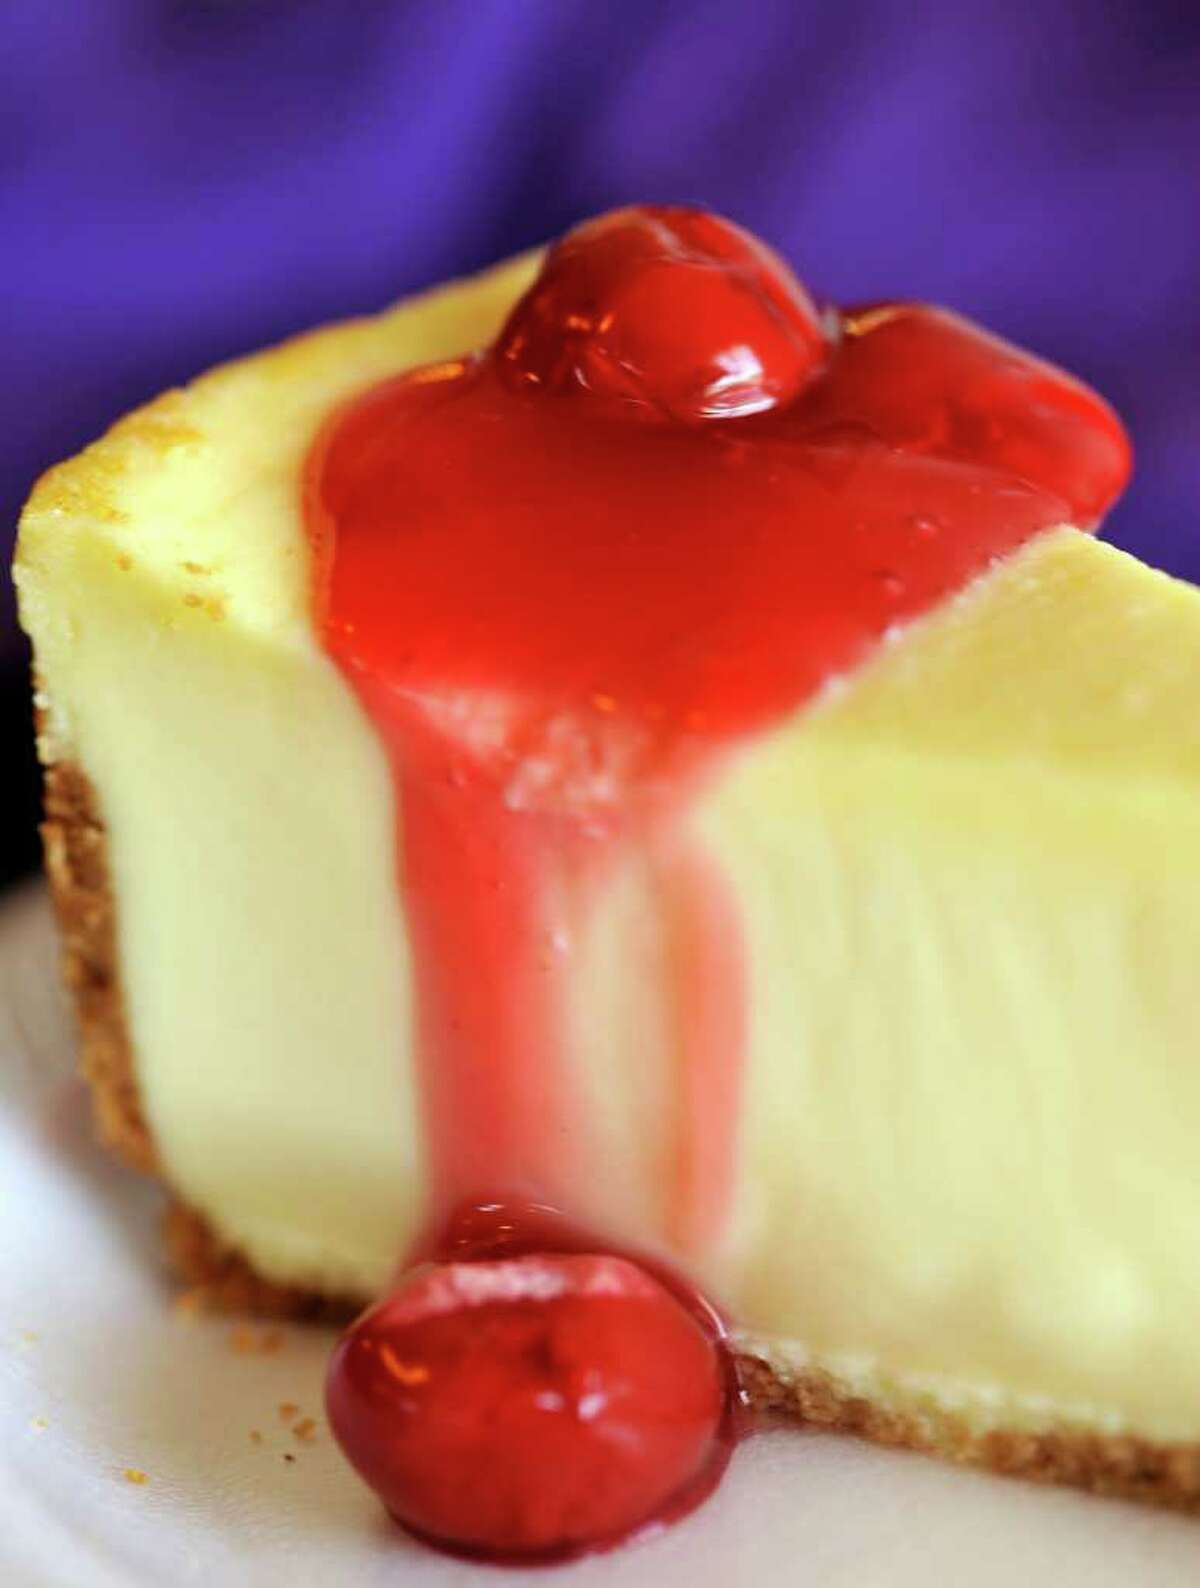 Cheesecake is topped with cherry drizzle.